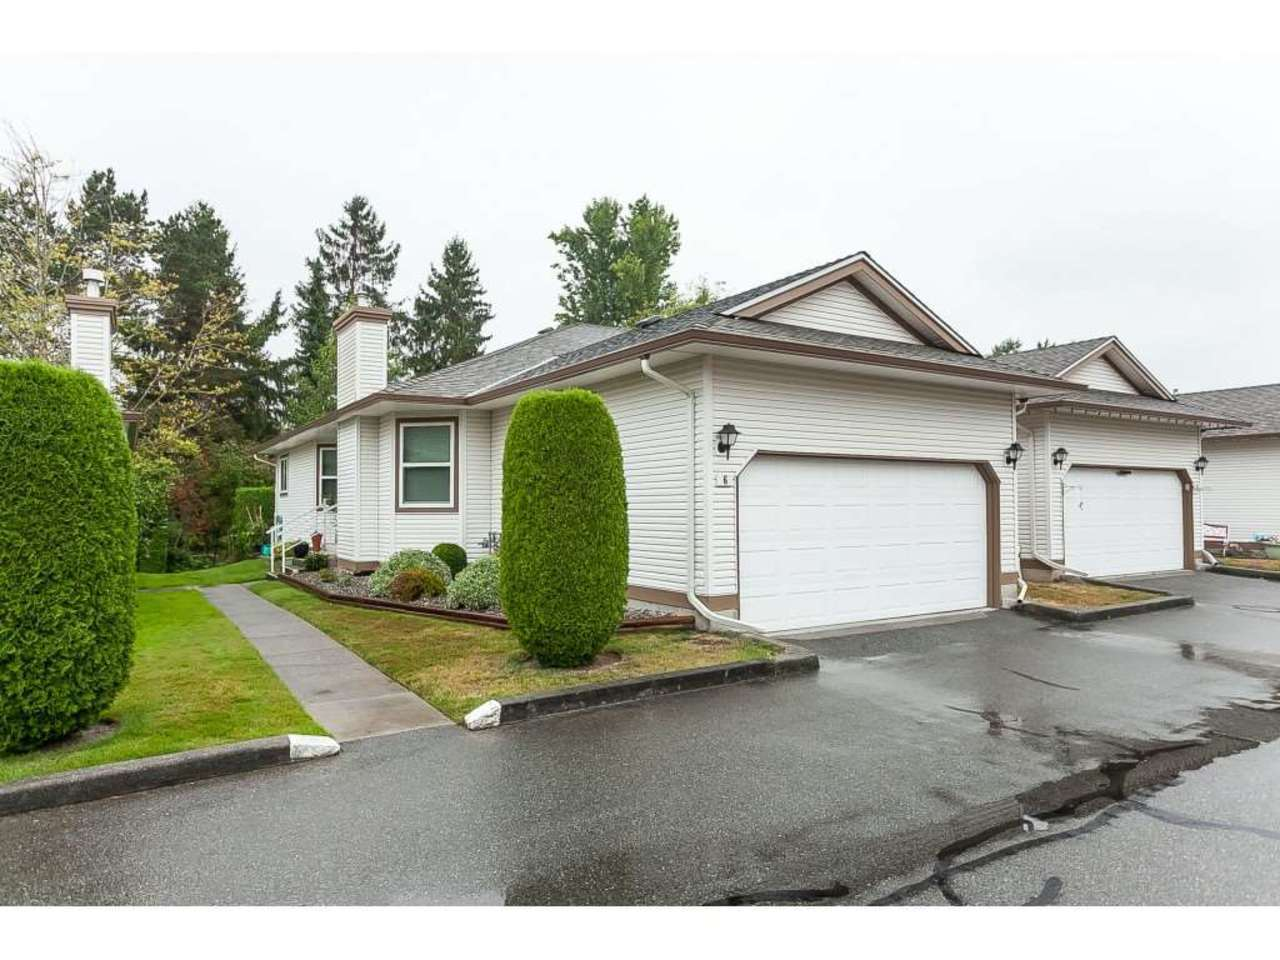 27435-29a-avenue-aldergrove-langley-langley-01 at 6 - 27435 29a Avenue, Aldergrove Langley, Langley